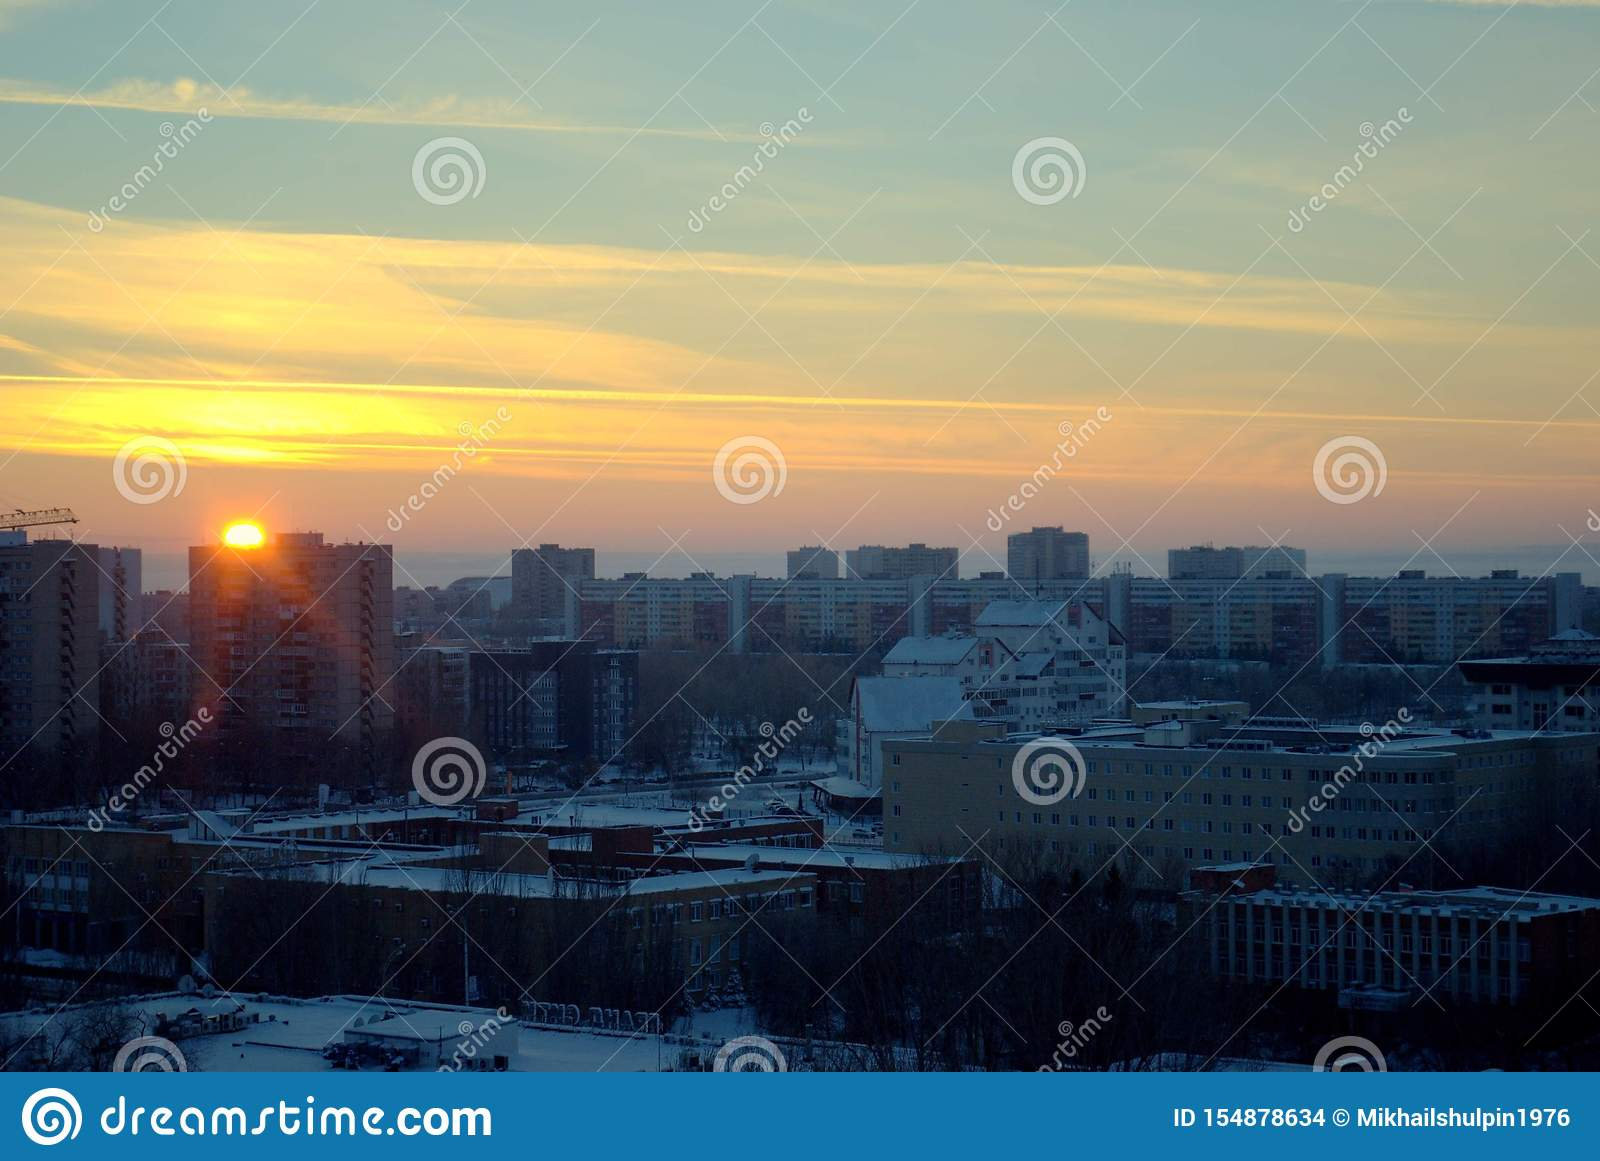 Panorama of the city on the background of a bright January sunset